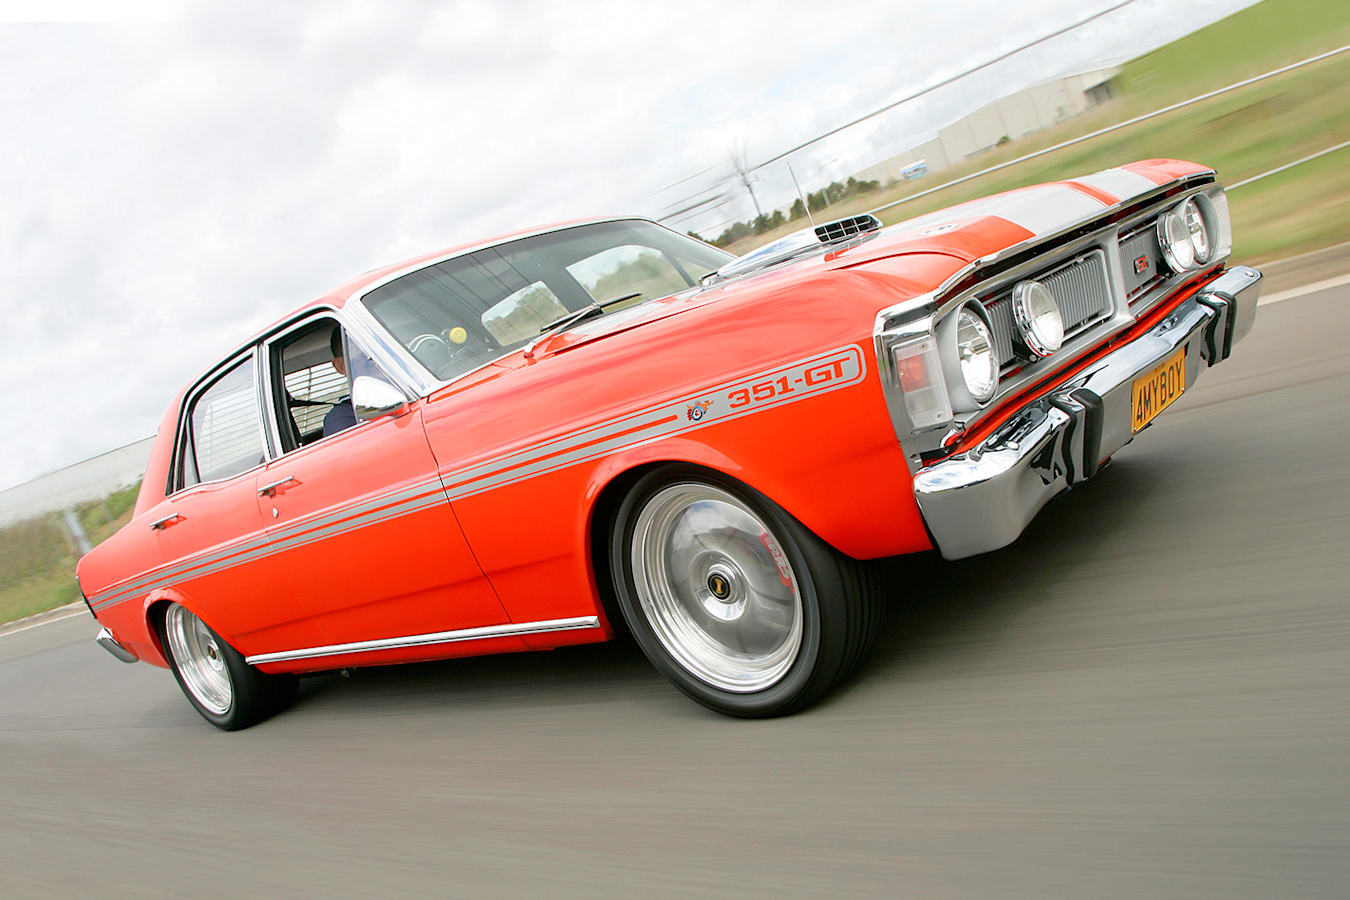 Ford Fairmont XY GT replica onroad